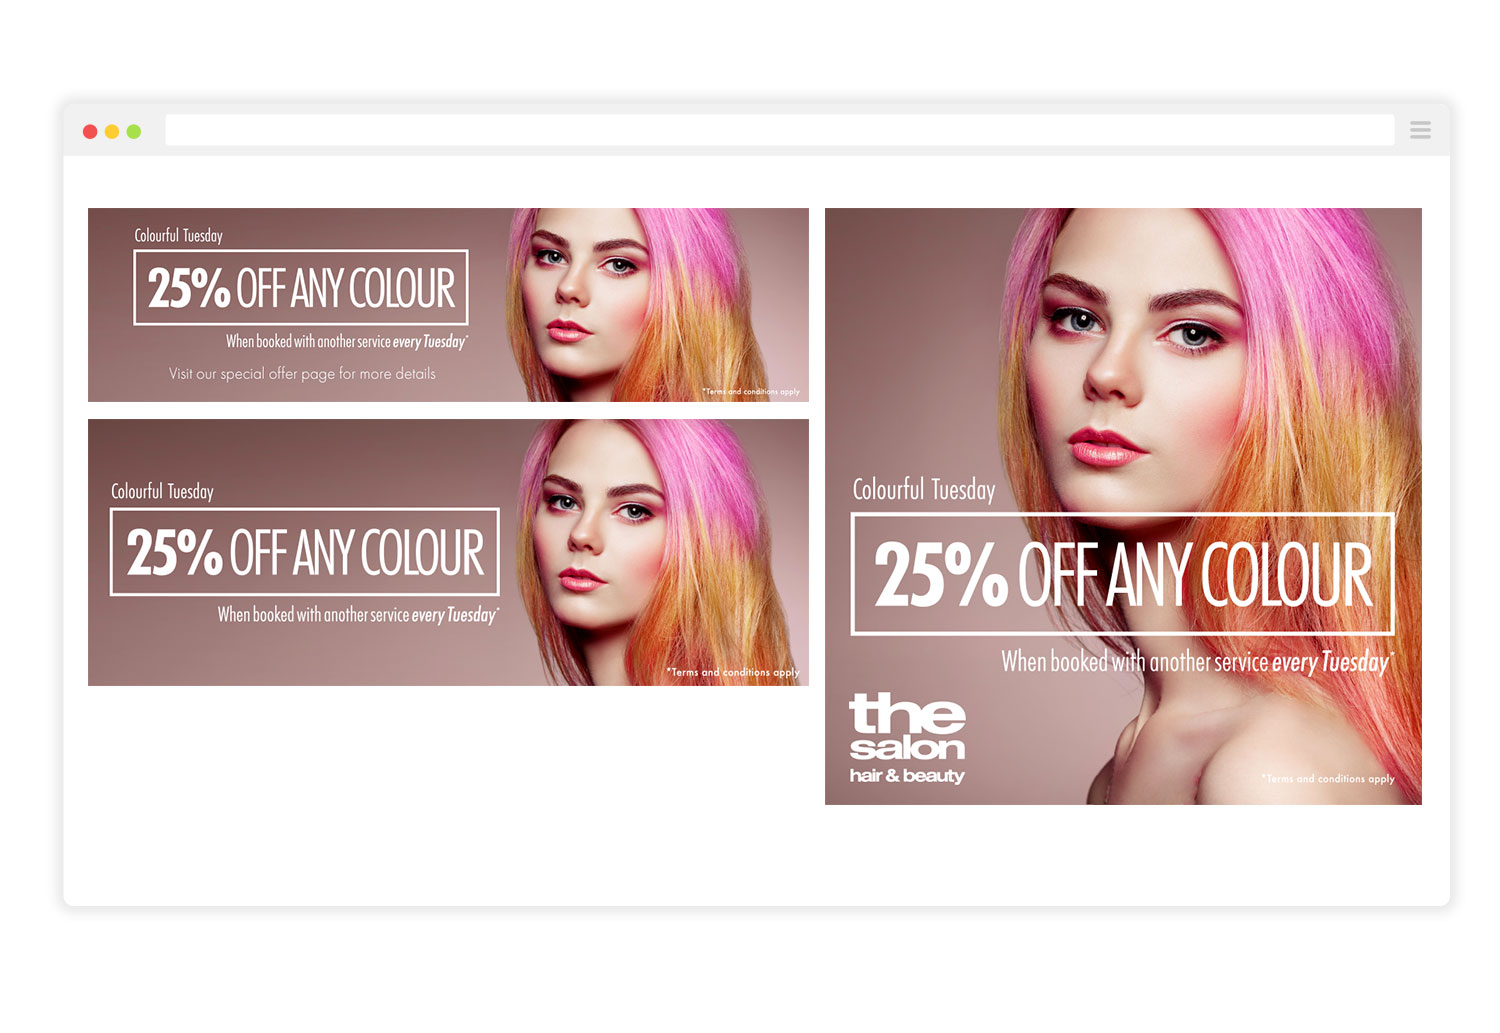 The Salon Colour Offer Campaign Graphics for Social Media